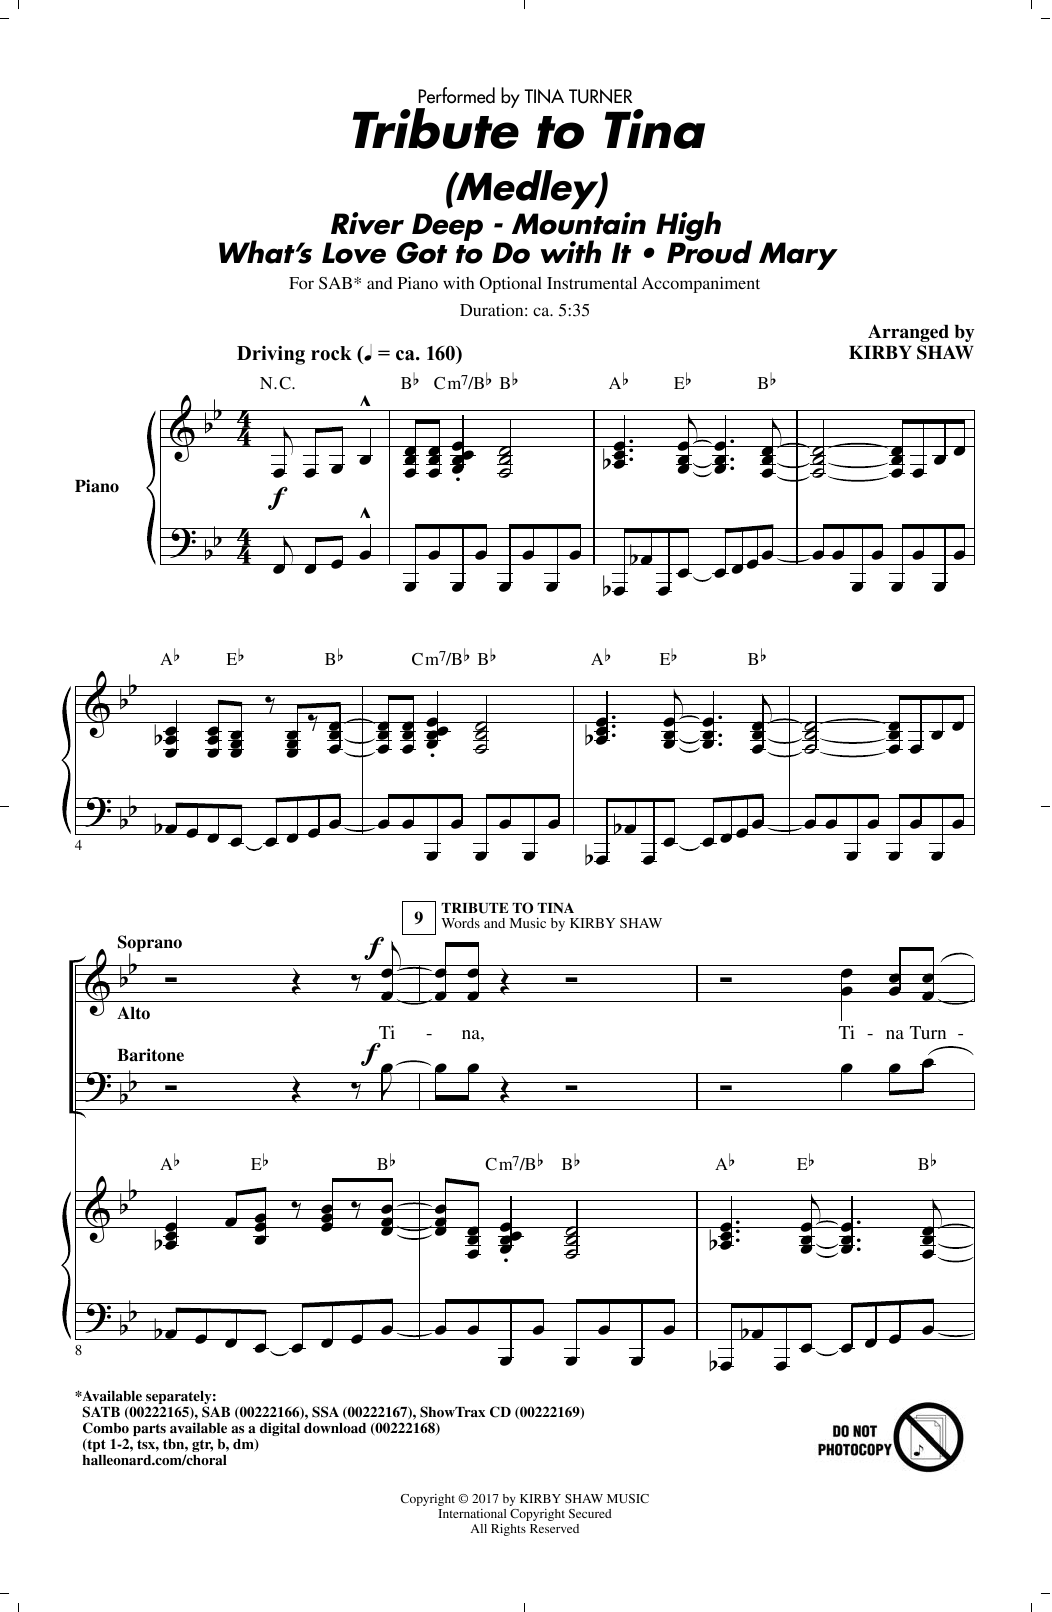 Kirby Shaw Tribute to Tina sheet music notes and chords. Download Printable PDF.